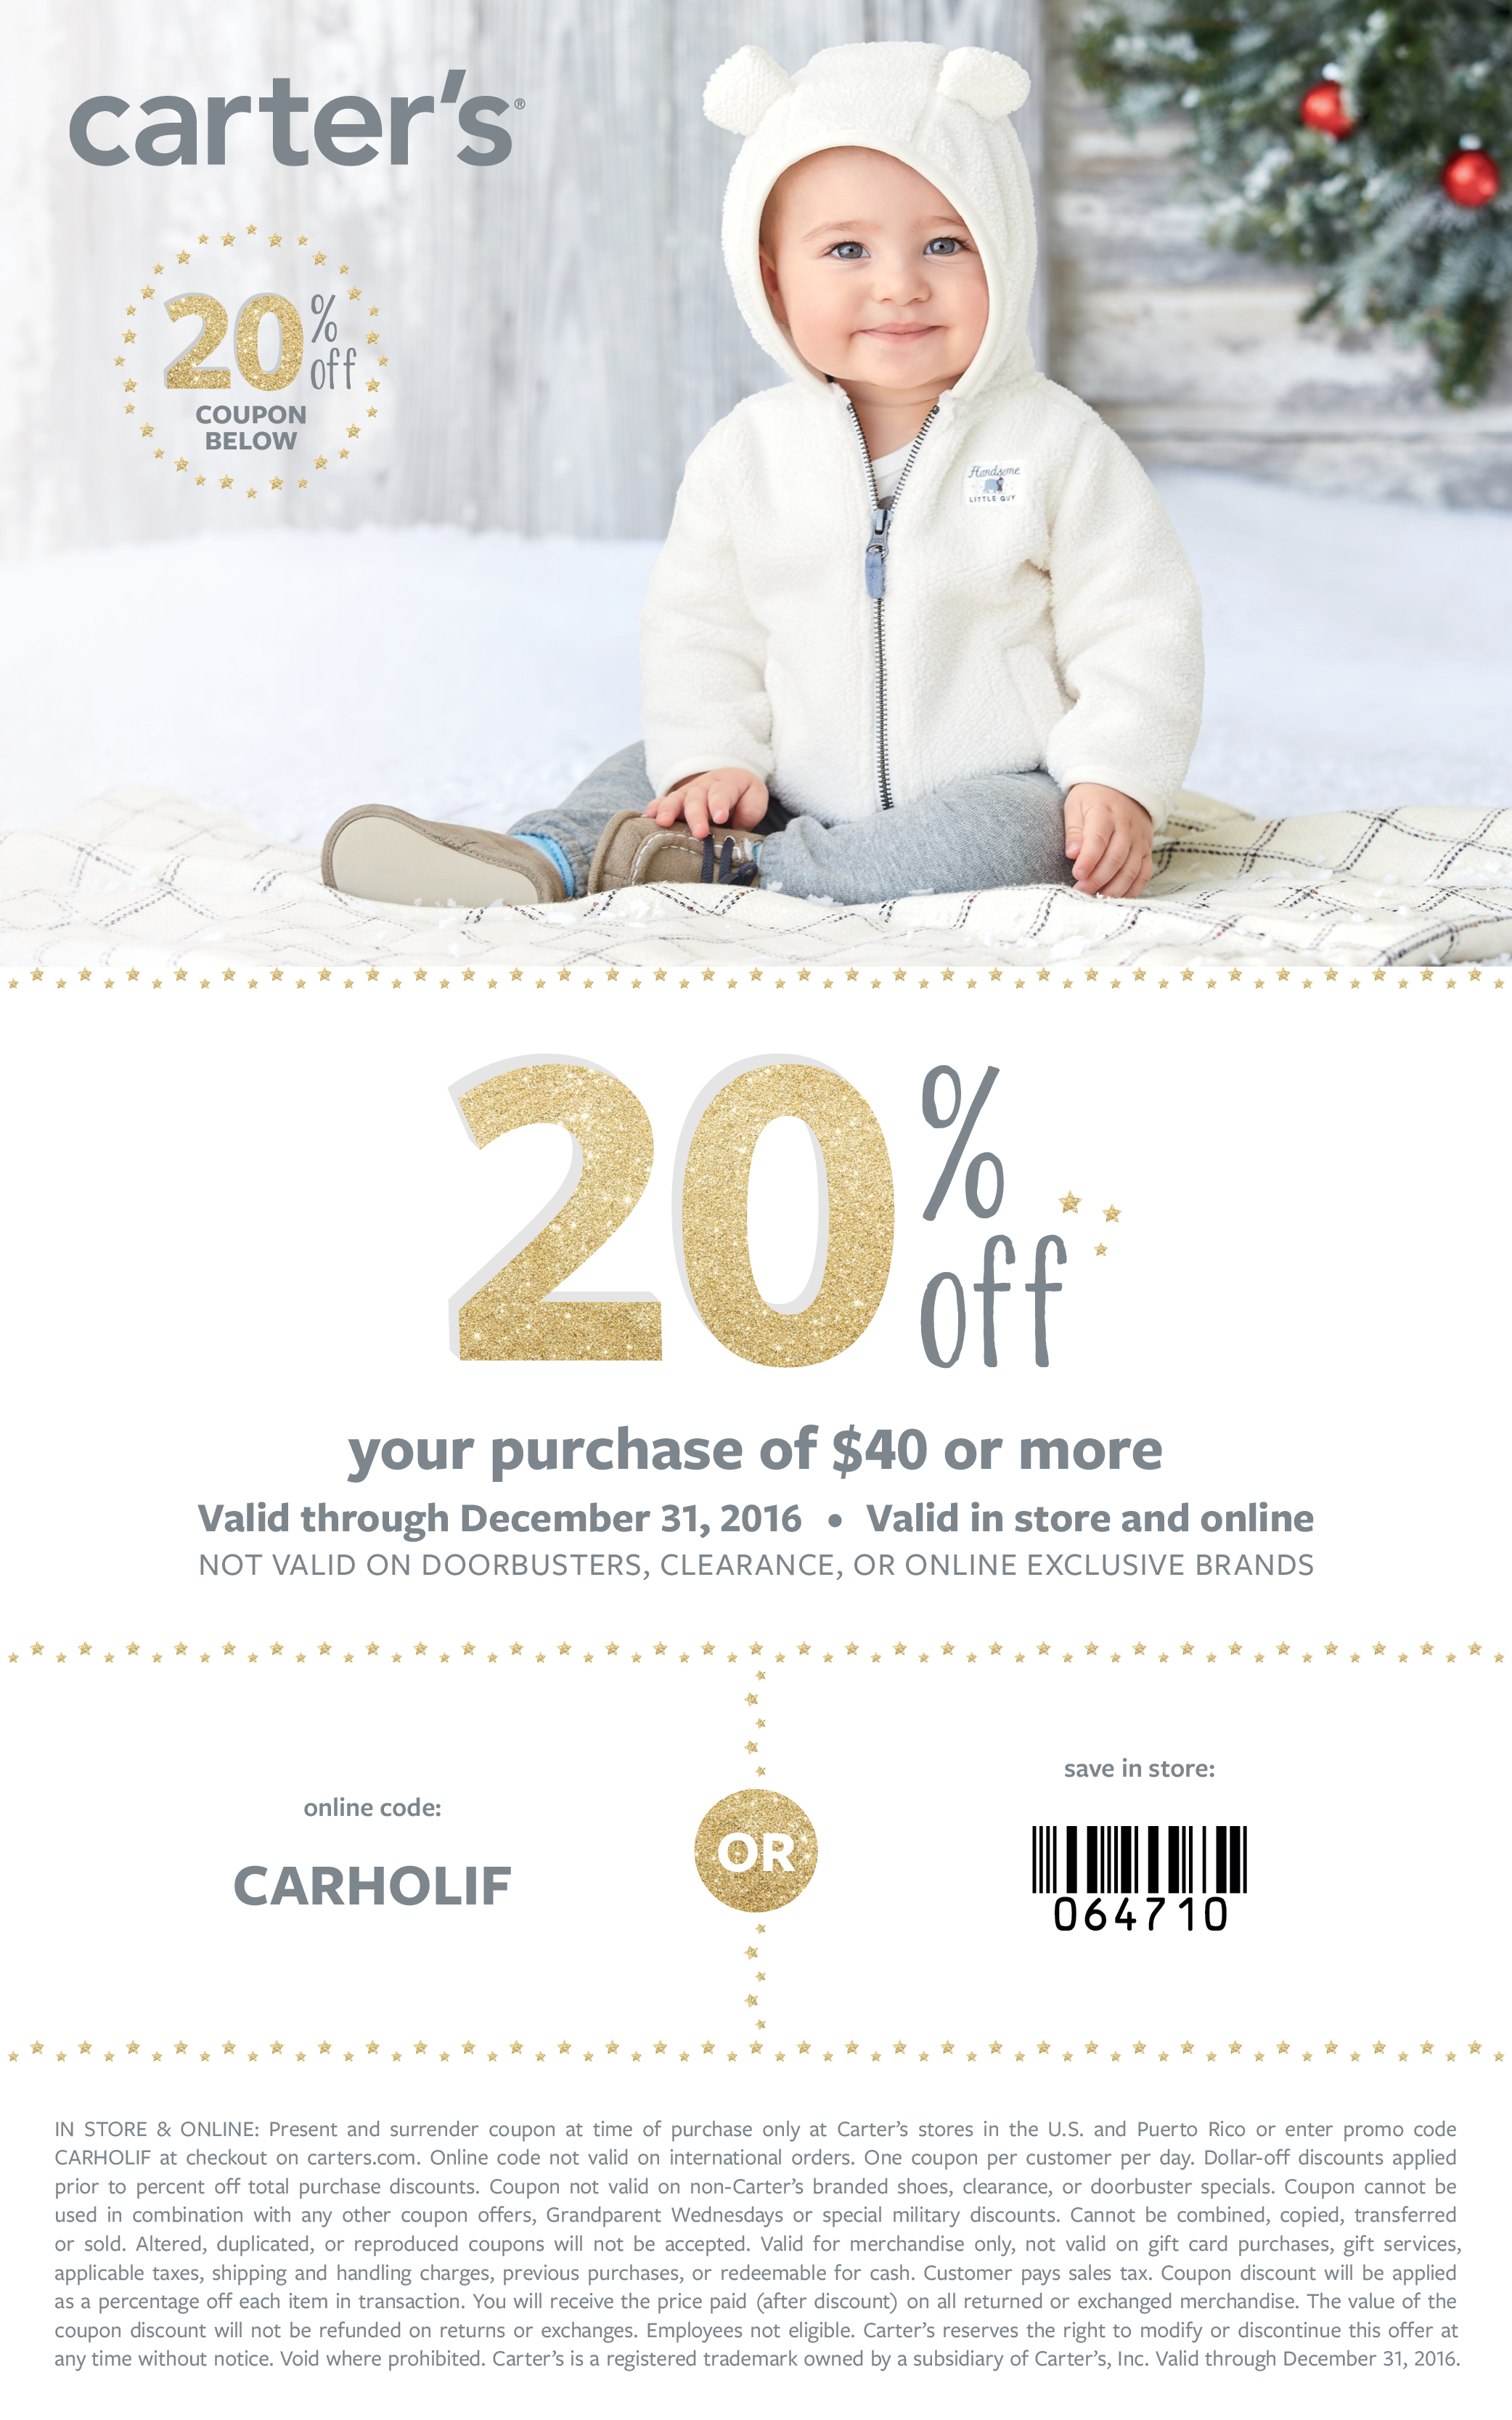 carters-carter's-baby clothes-kids clothes-holiday clothes- Carter's -Holiday dressing -Boy pajamas -Girl Pajamas-Holiday pajamas -Baby holiday clothes